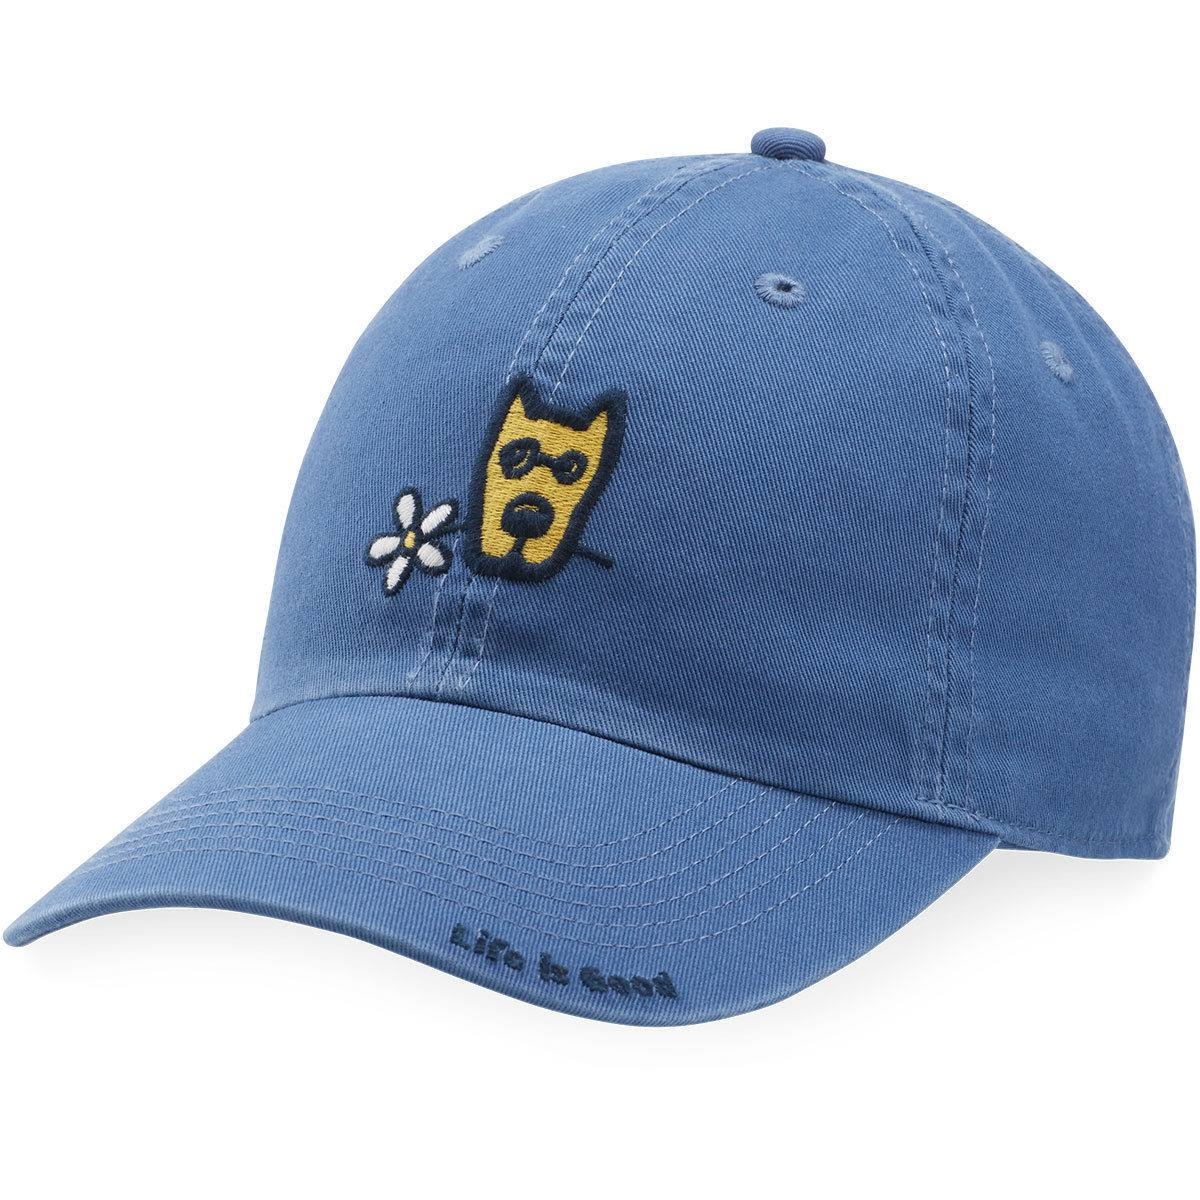 Life Is Good Rocket Daisy Chill Cap - Vintage Blue